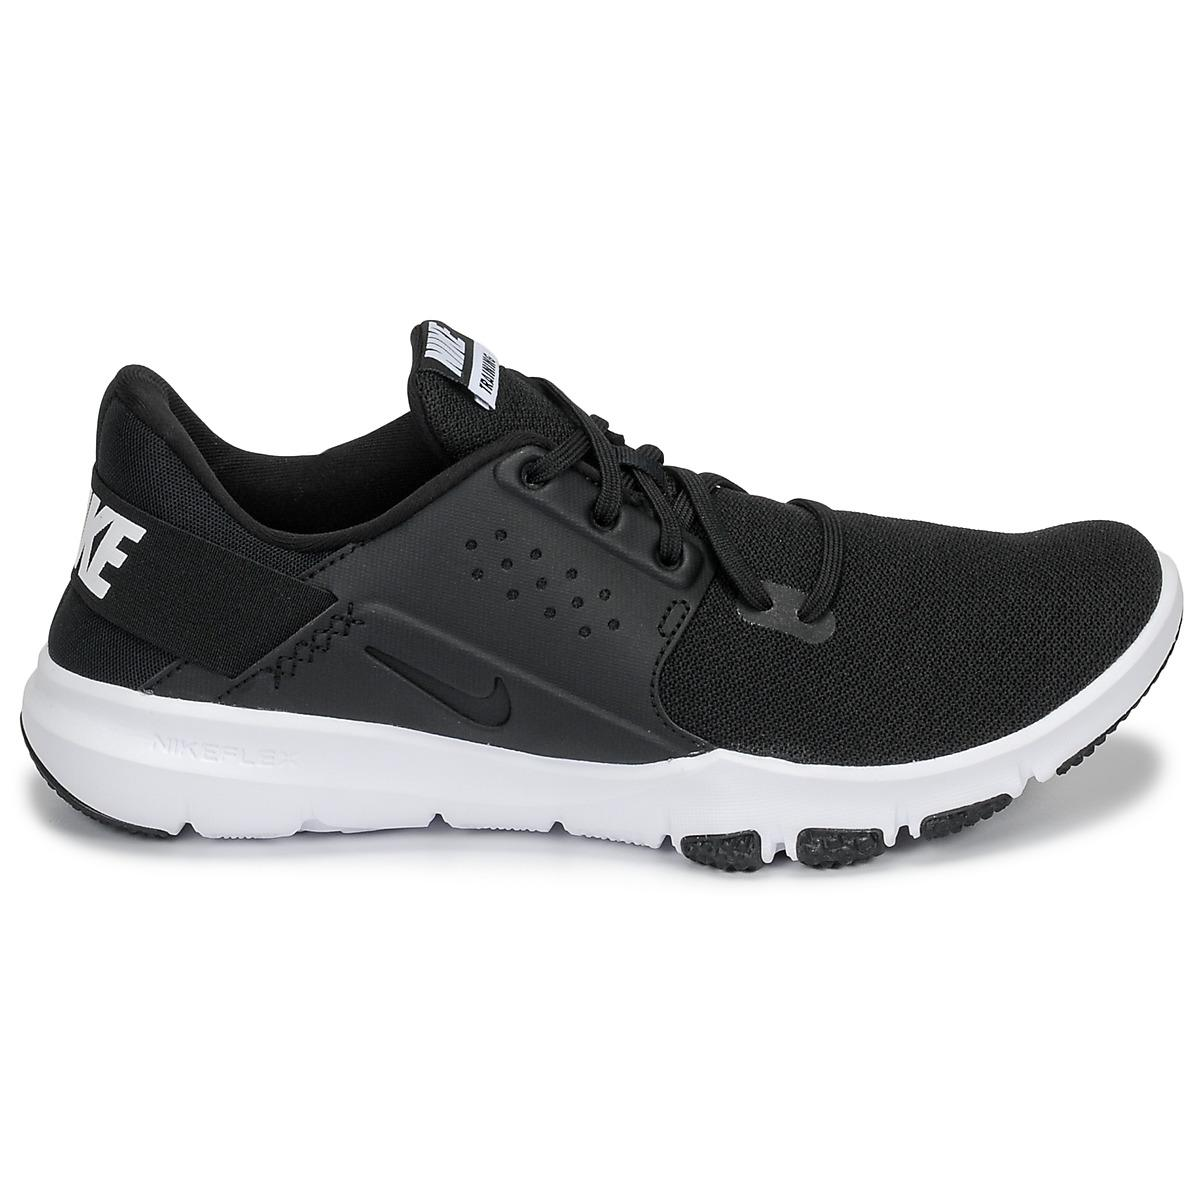 0d8555864ffd6 Nike - Black Flex Control 3 Trainers for Men - Lyst. View fullscreen